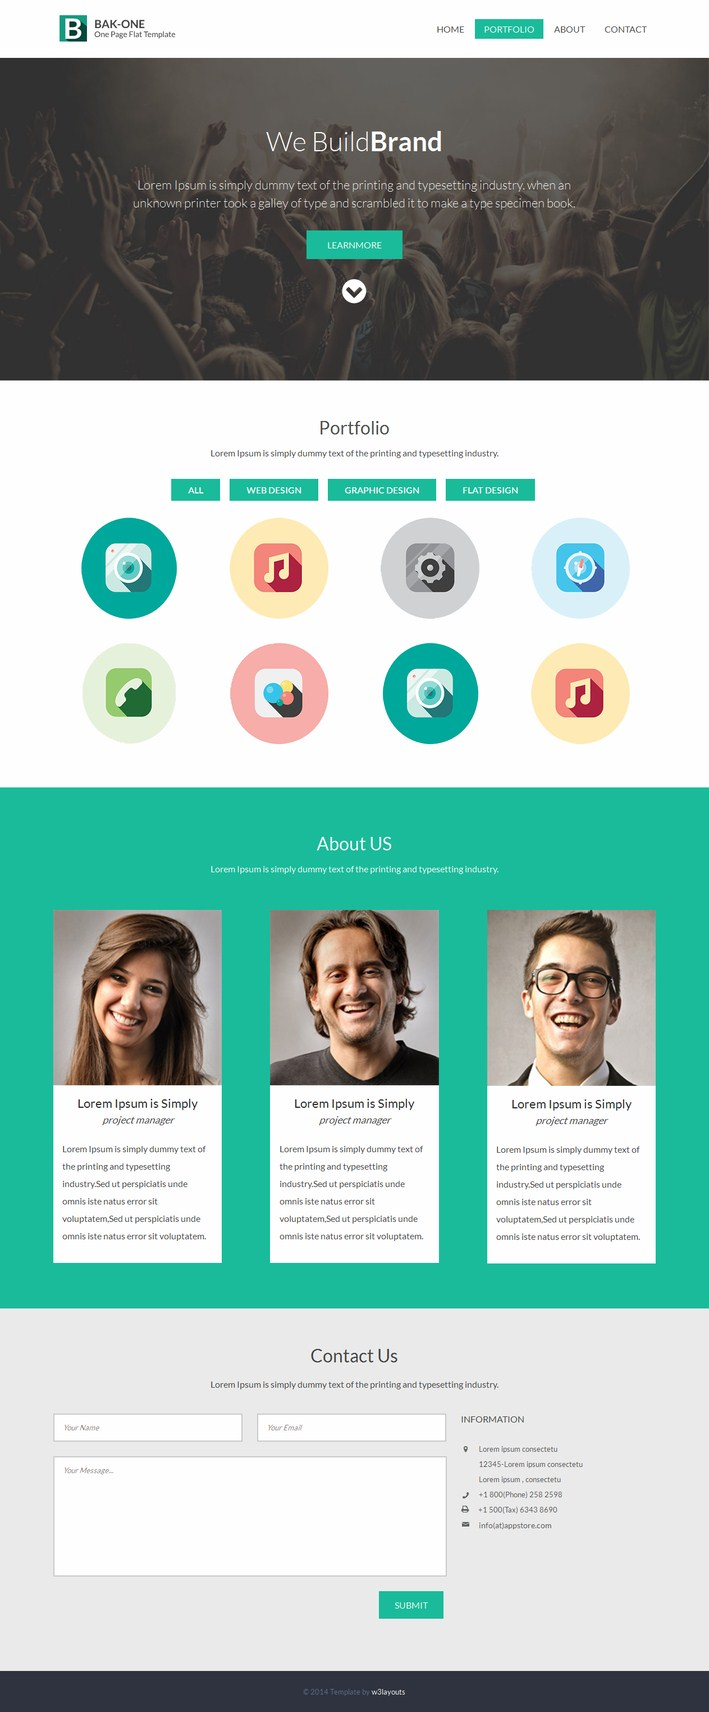 The Bak-one Free HTML5 CSS3 Responsive Templates